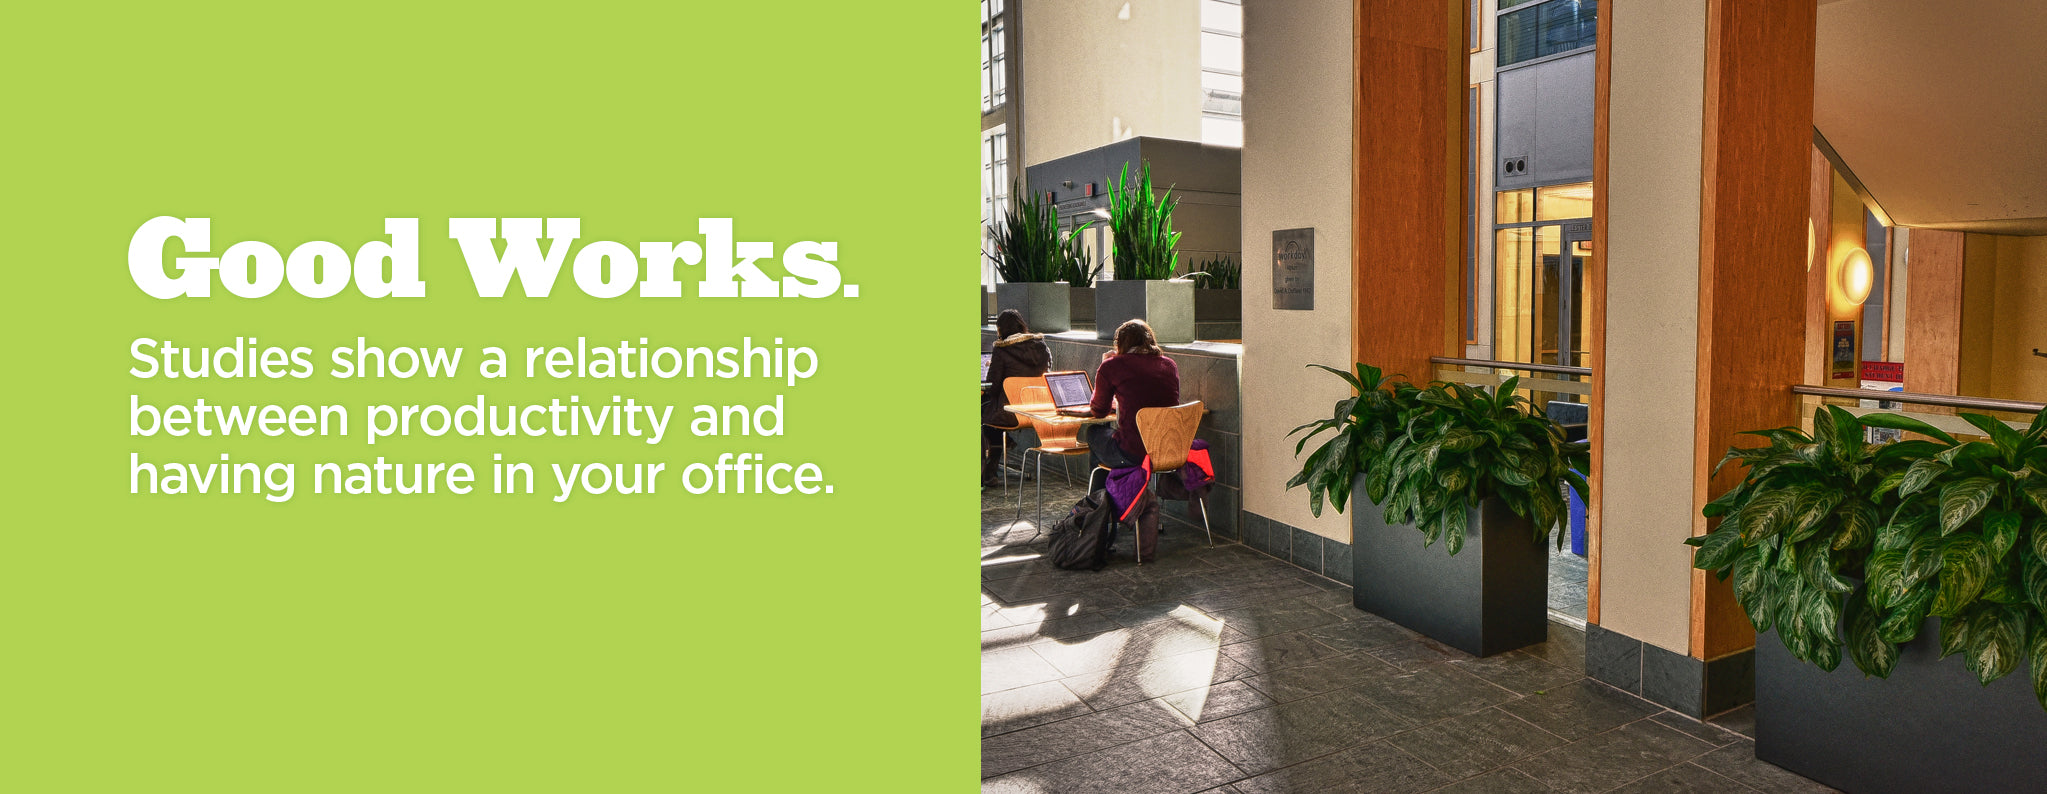 Earth Wall Planters. Good Works. Studies show a relationship between productivity and having nature in your office.